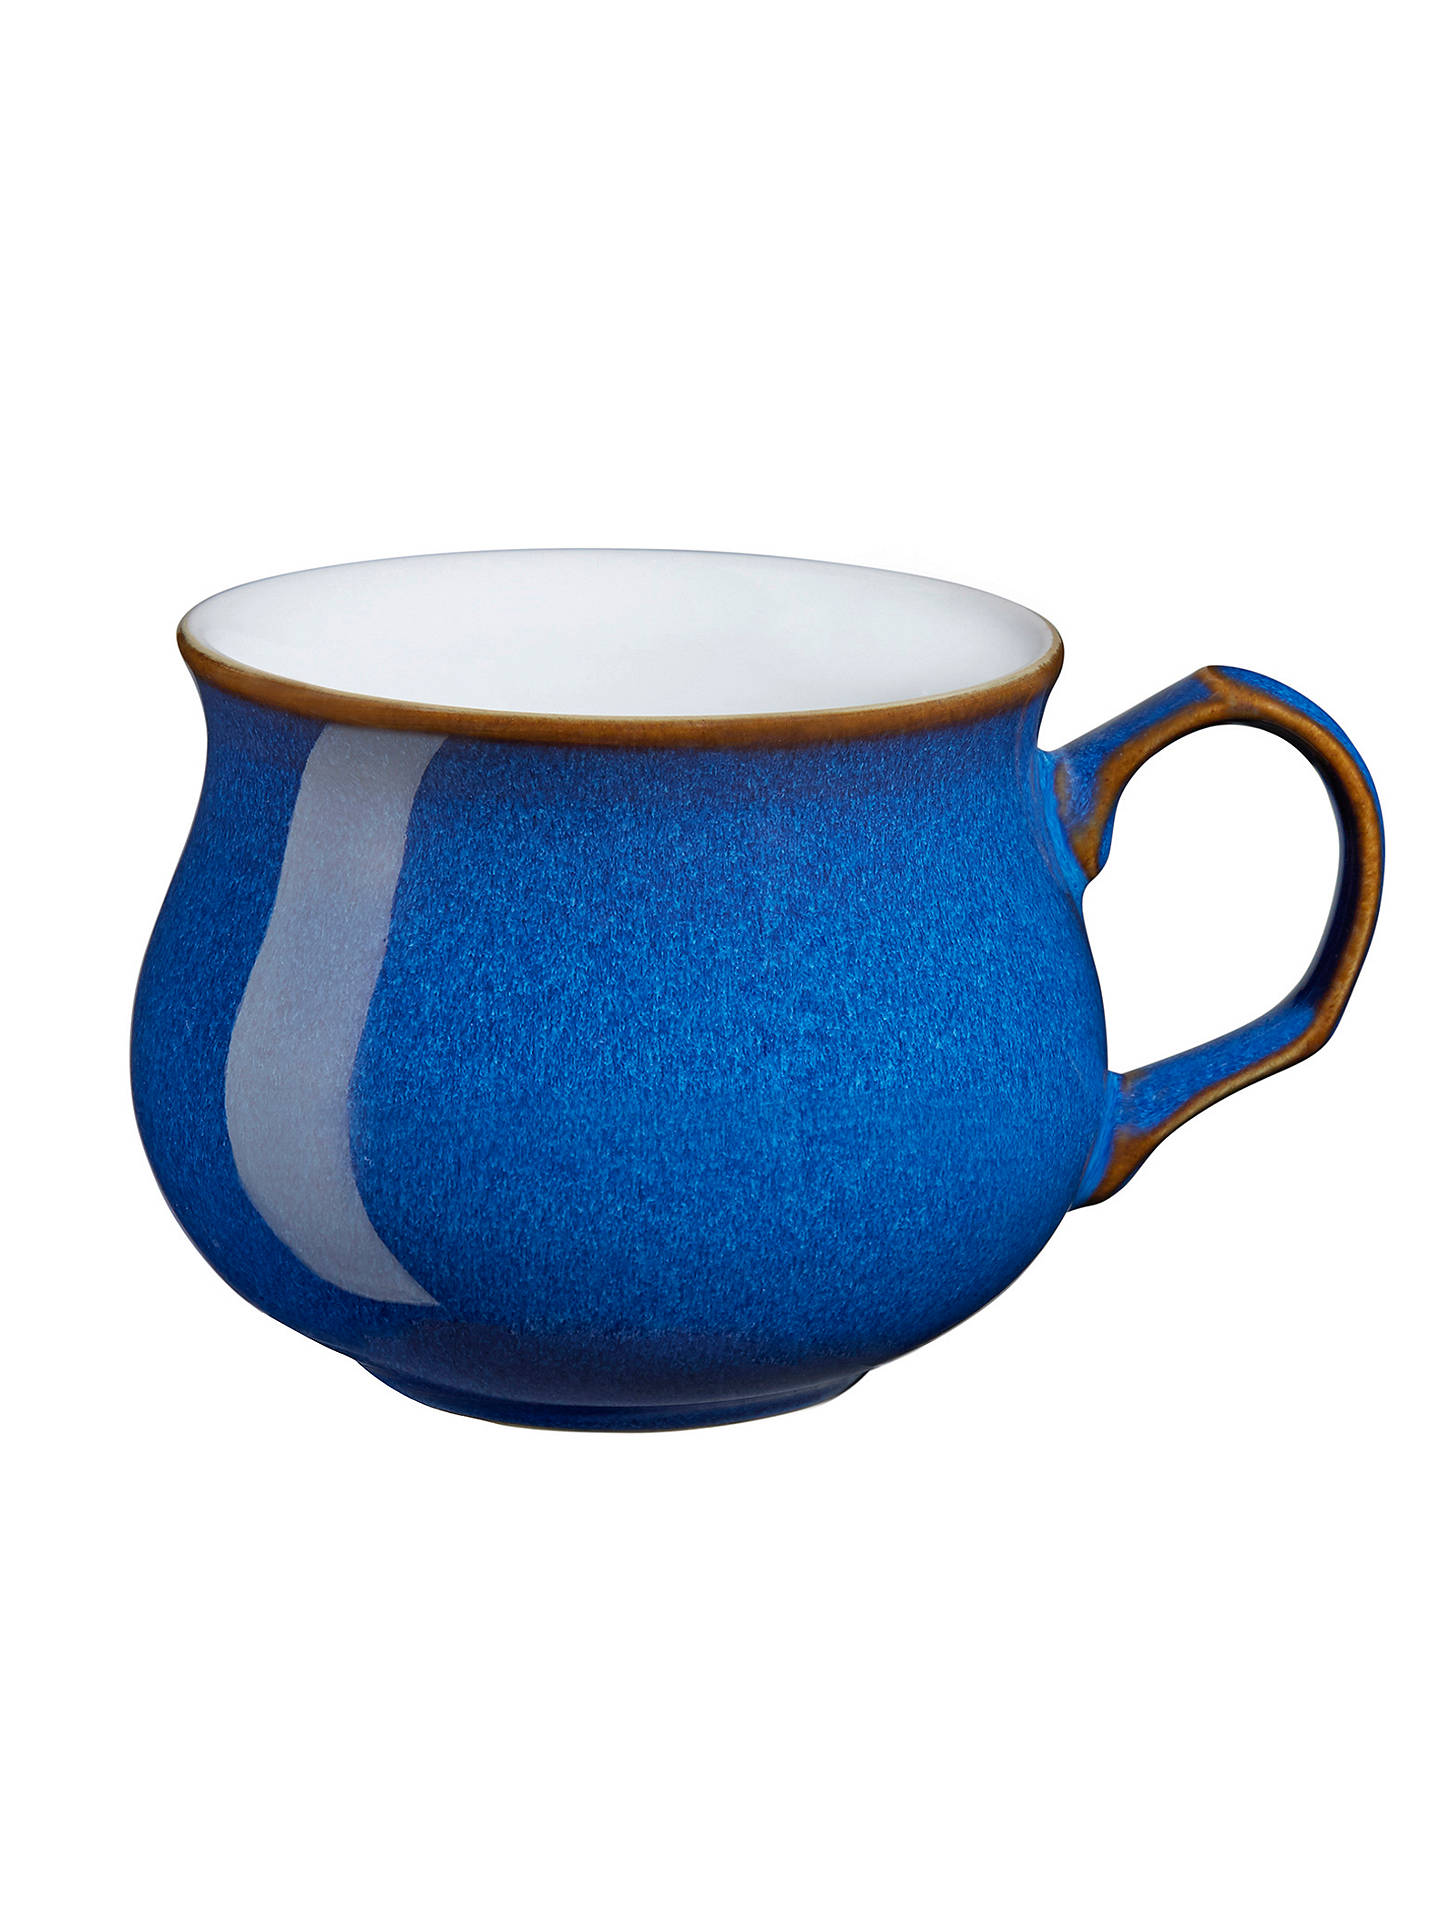 Buy Denby Imperial Blue Tea / Coffee Cup Online at johnlewis.com